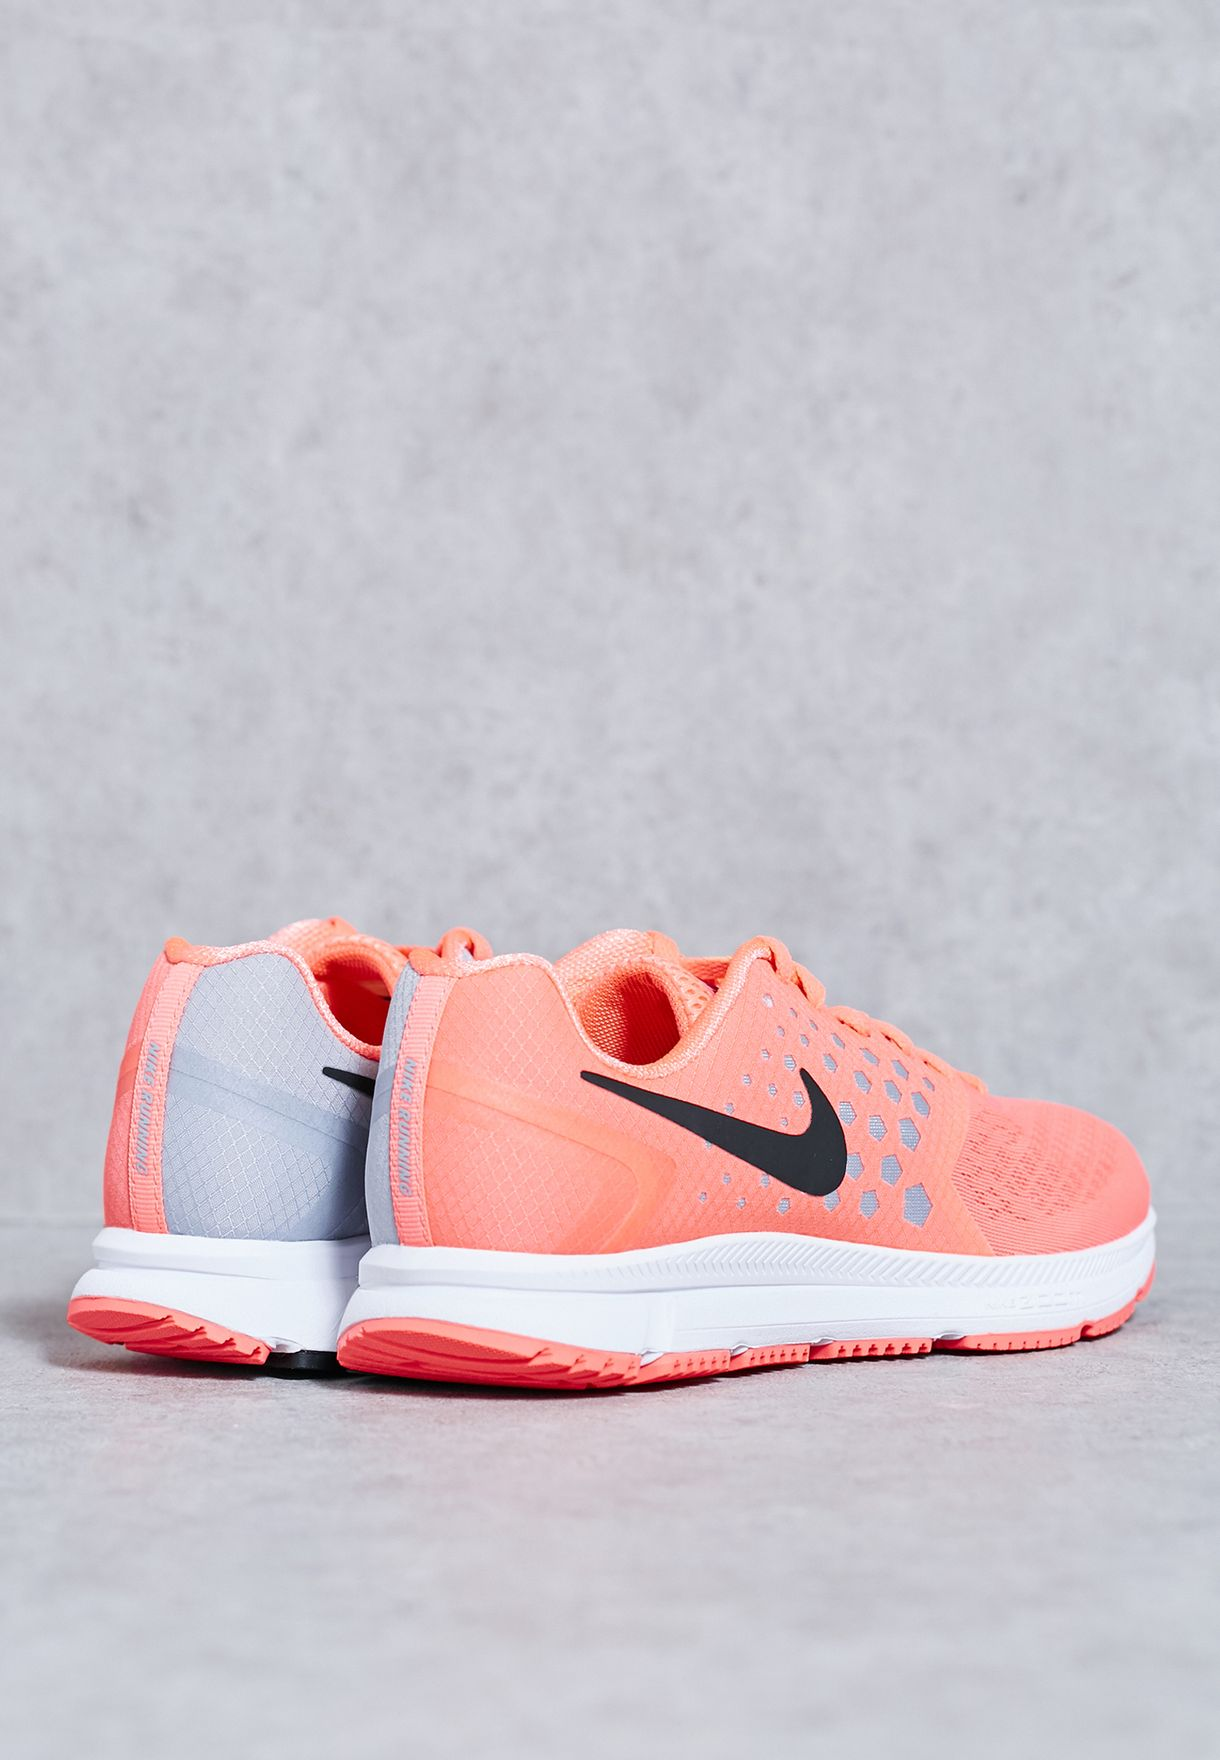 Shop Nike Pink Zoom Span 852450 601 For Women In Uae Ni727sh86zlp Shoes